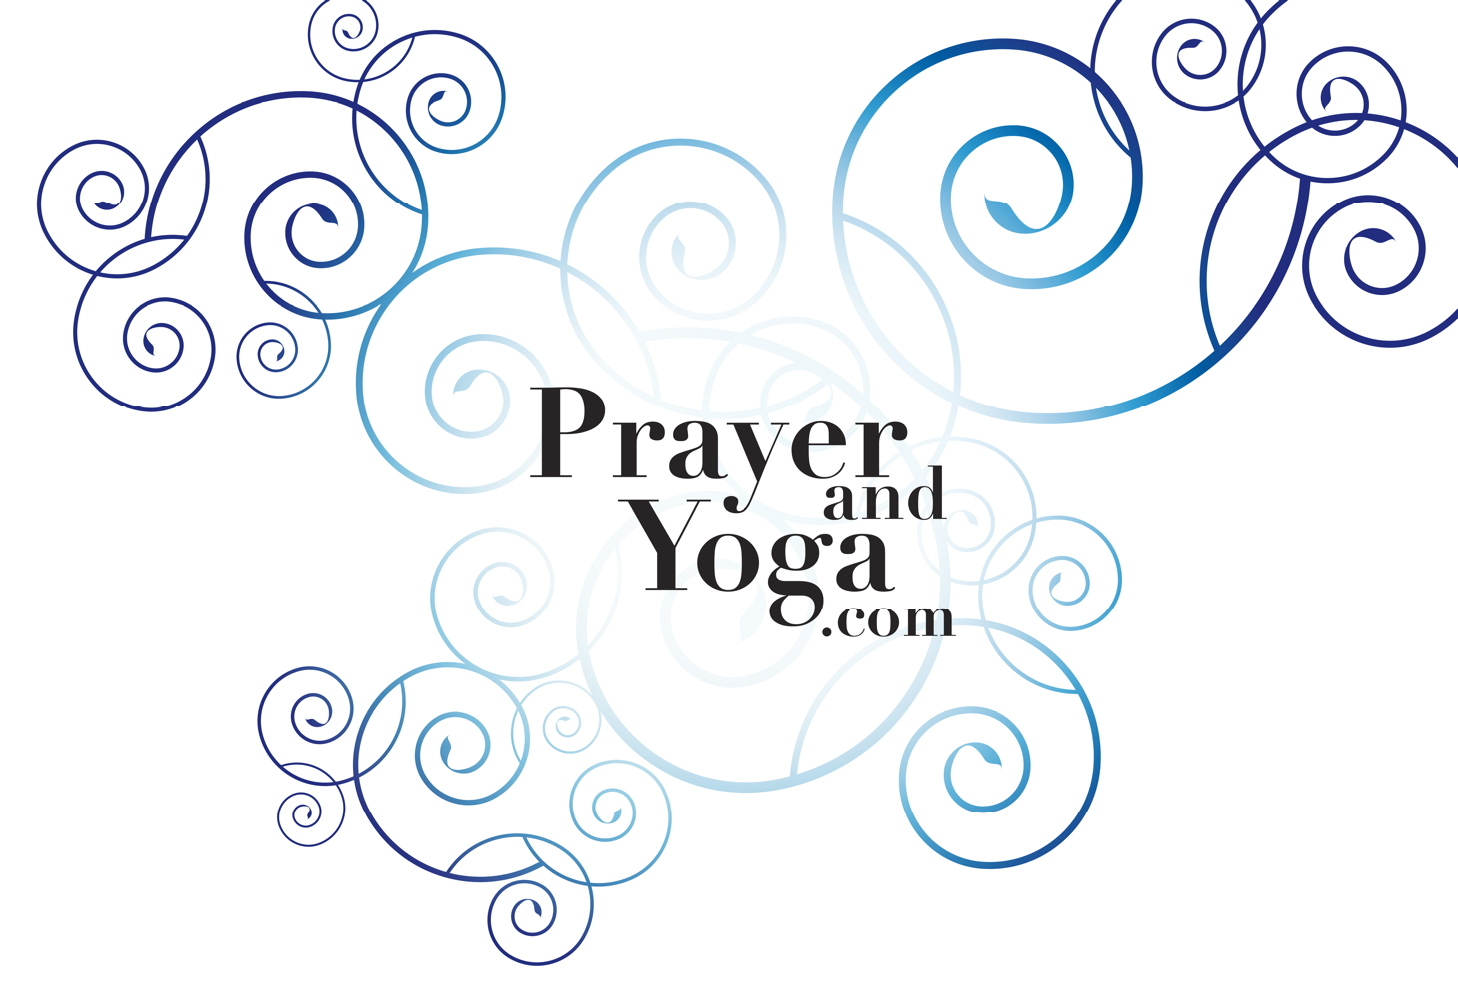 Prayer and Yoga